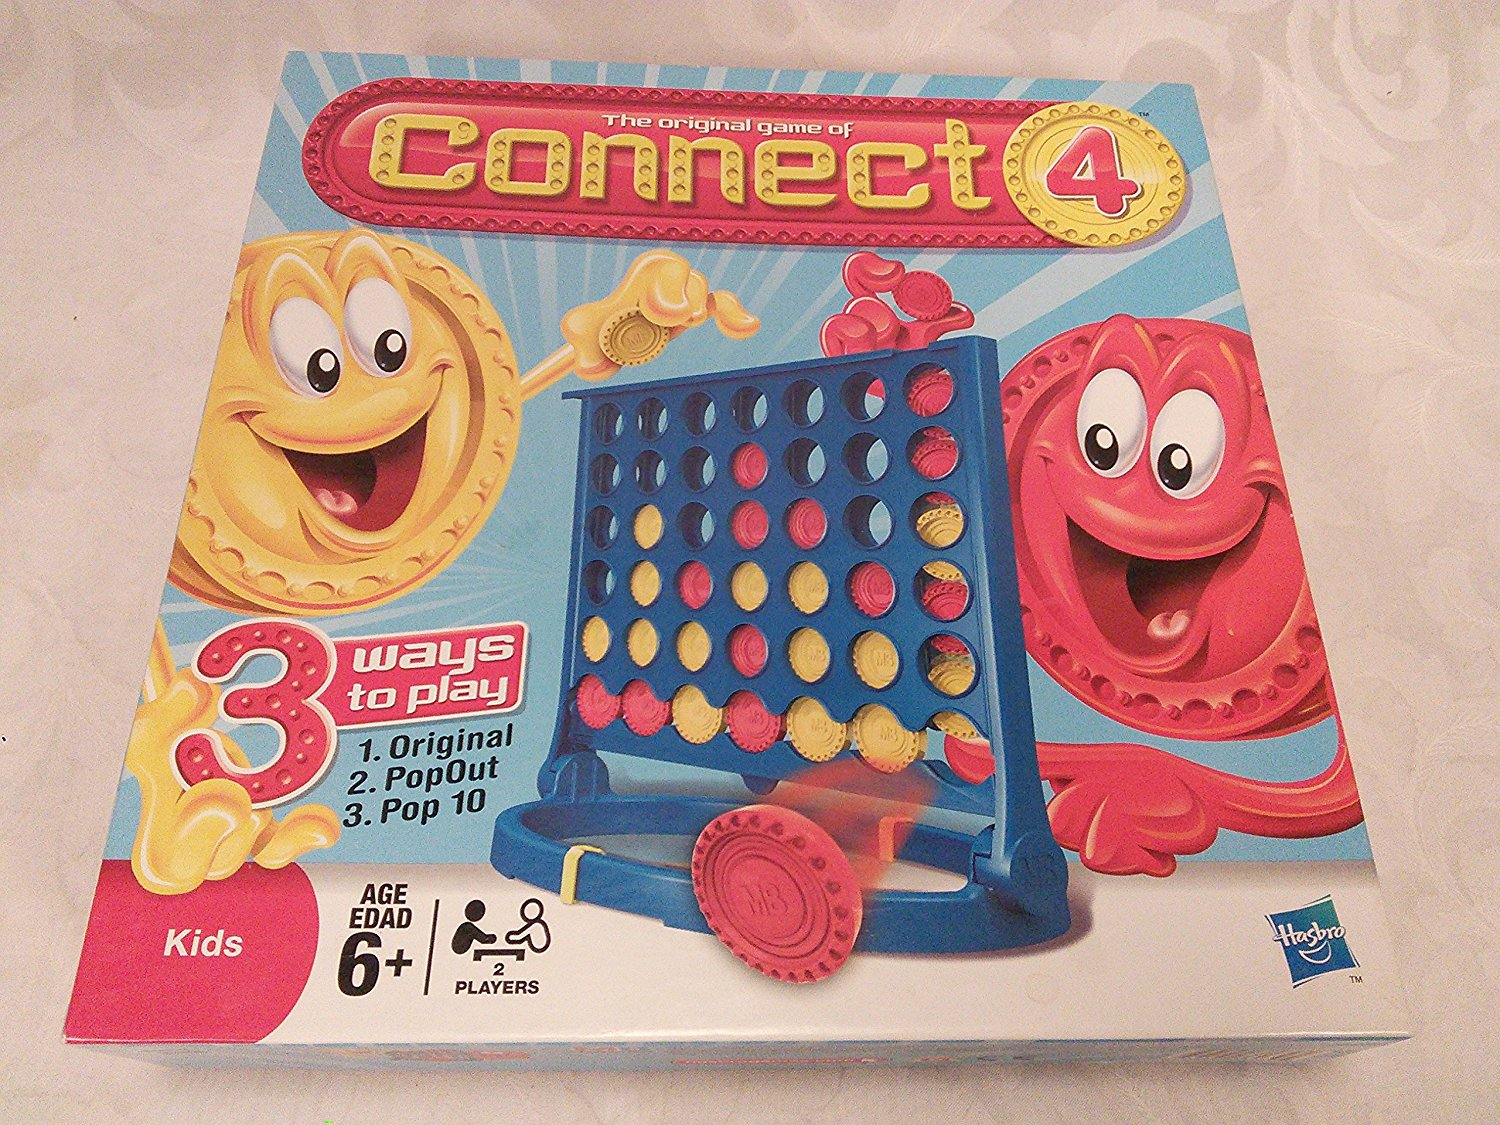 The Original Game Of Connect 4 For Kids 2008 Hasbro MB GamesYou can play original Connect 4, Popout, and Pop10... by